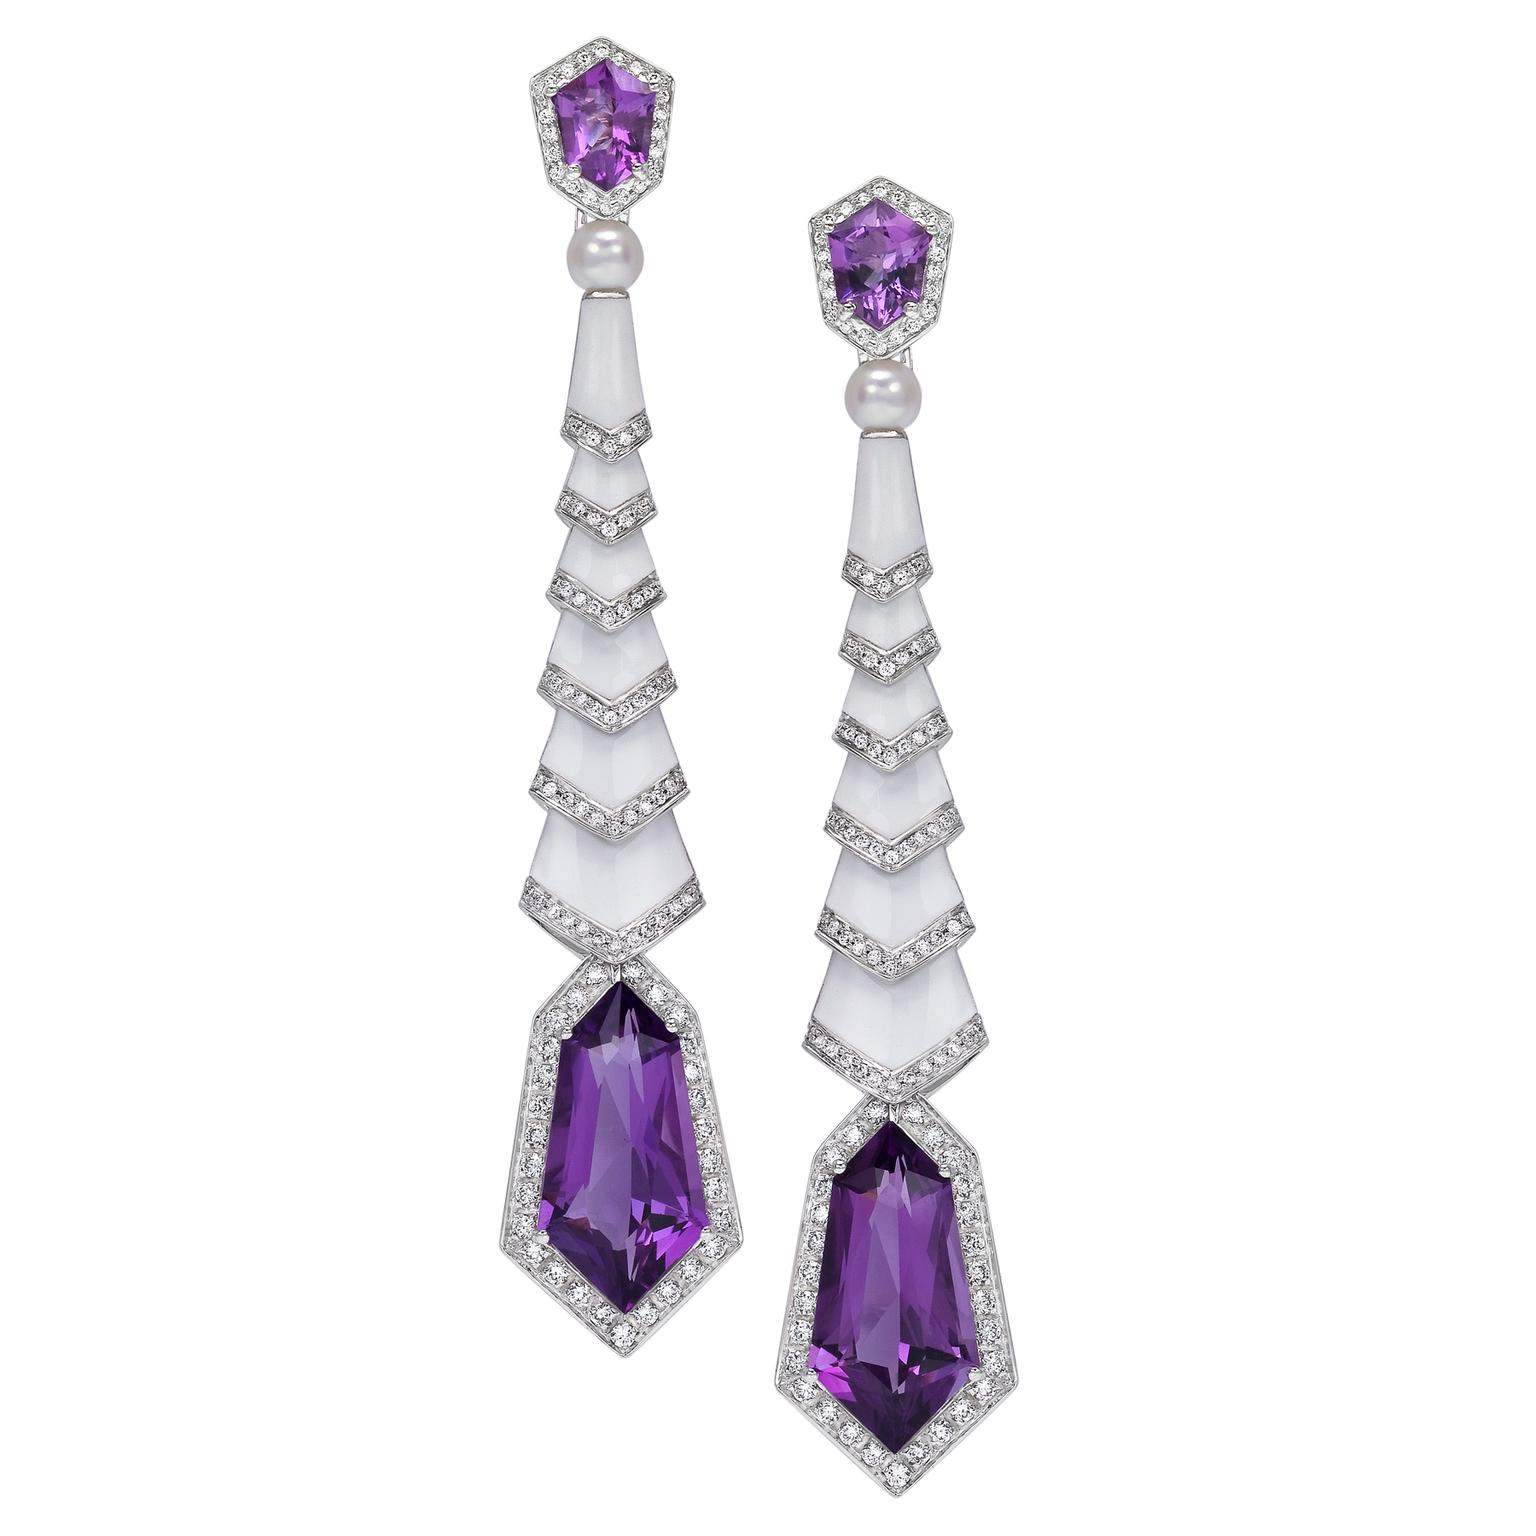 Avakian Gatsby enamel and amethyst earrings